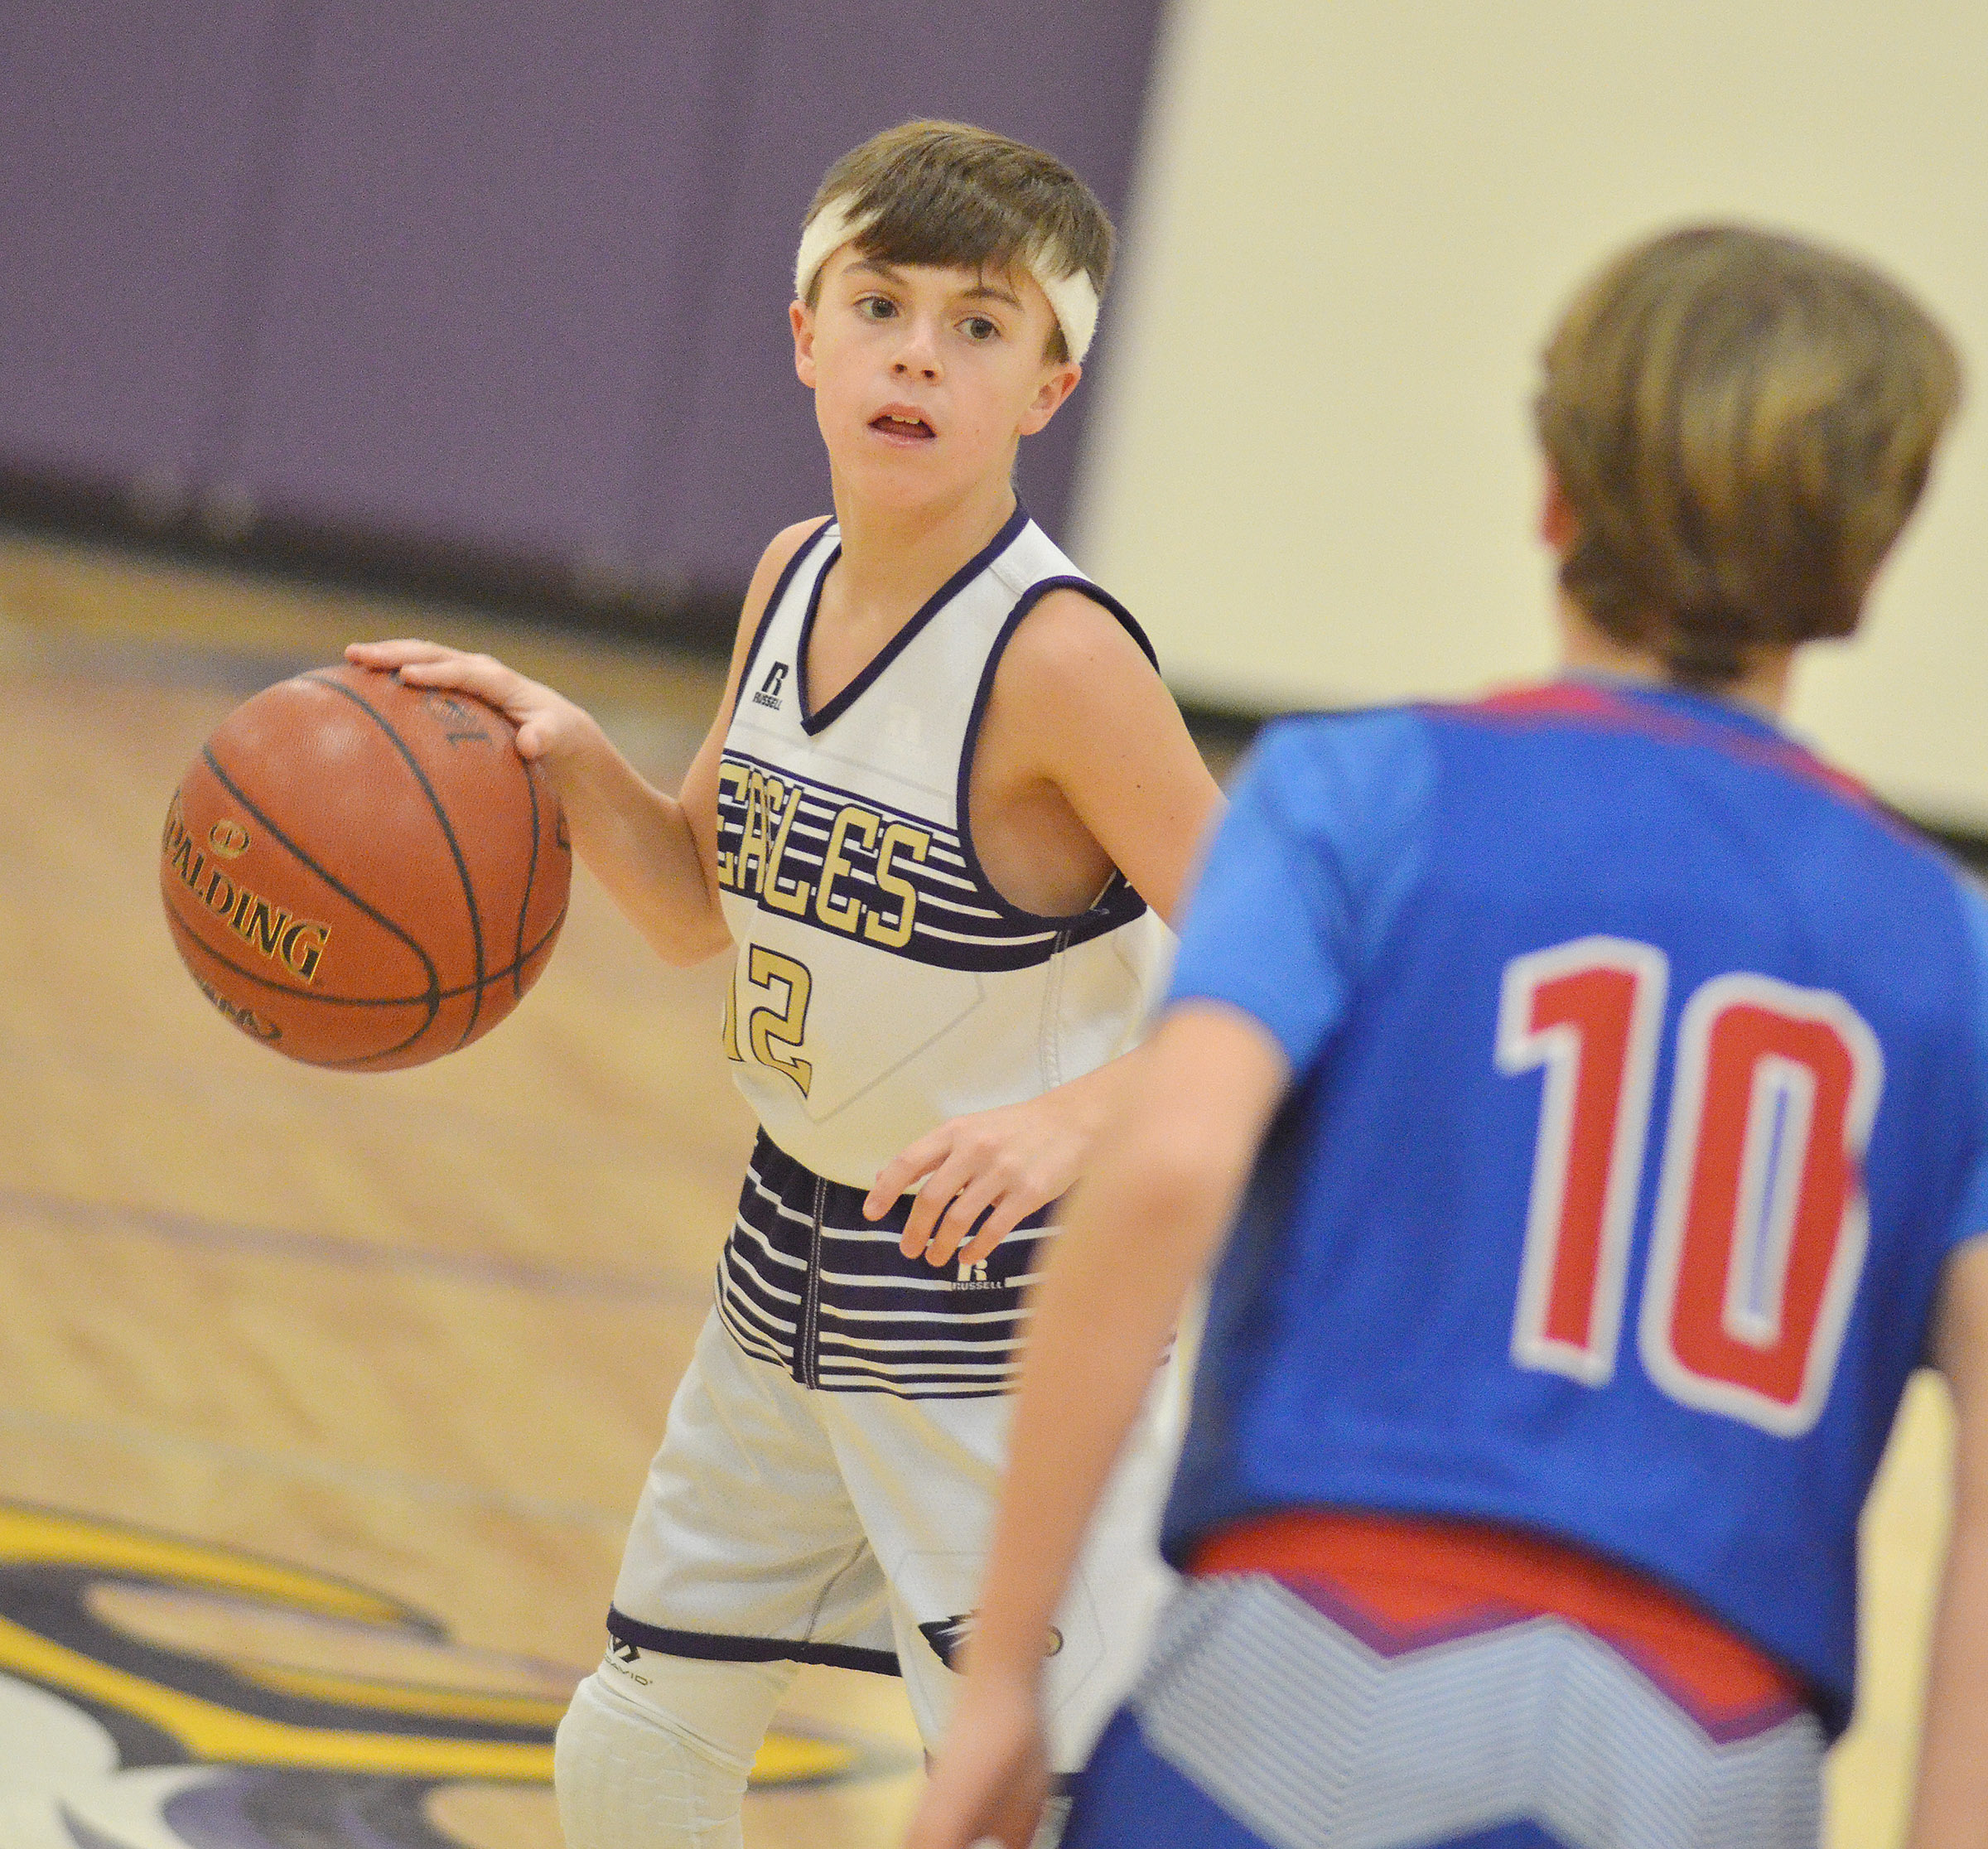 CMS seventh-grader Chase Hord sets up a play.